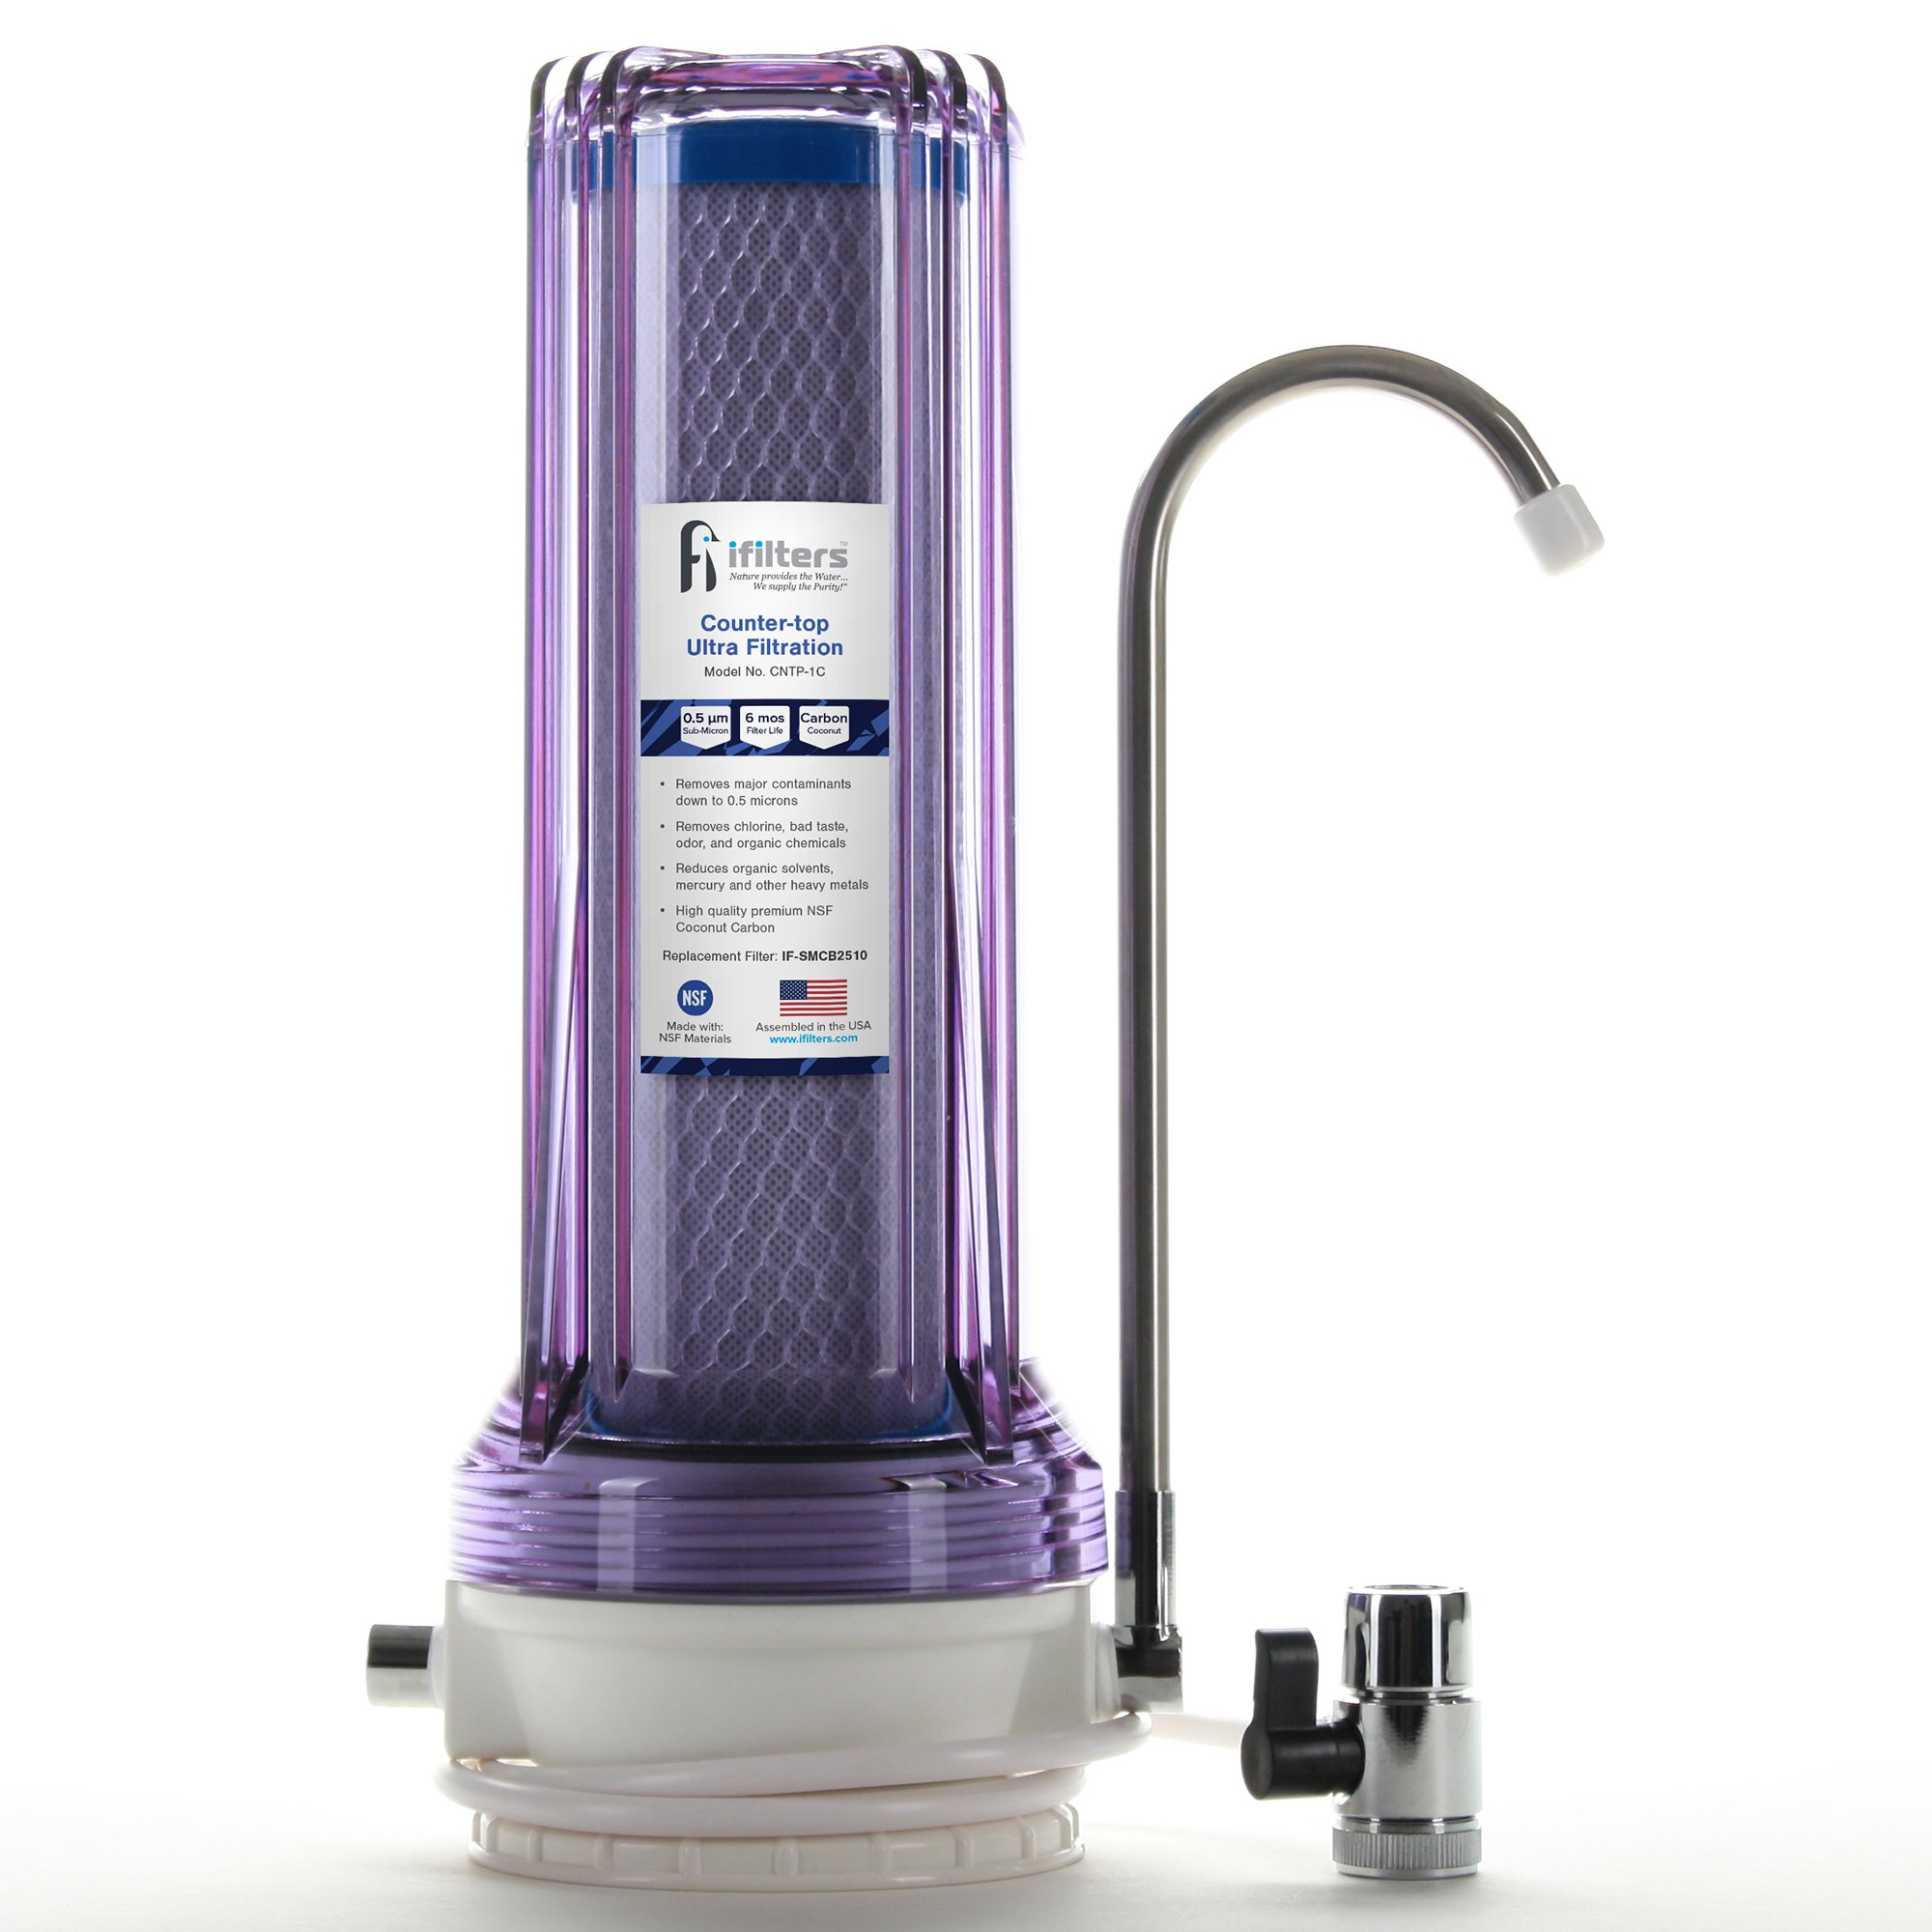 Countertop Ultra Drinking Water Filter for VOCs Cysts Pesticides Herbicides Chlorine Taste & Odor - Clear, Built in USA